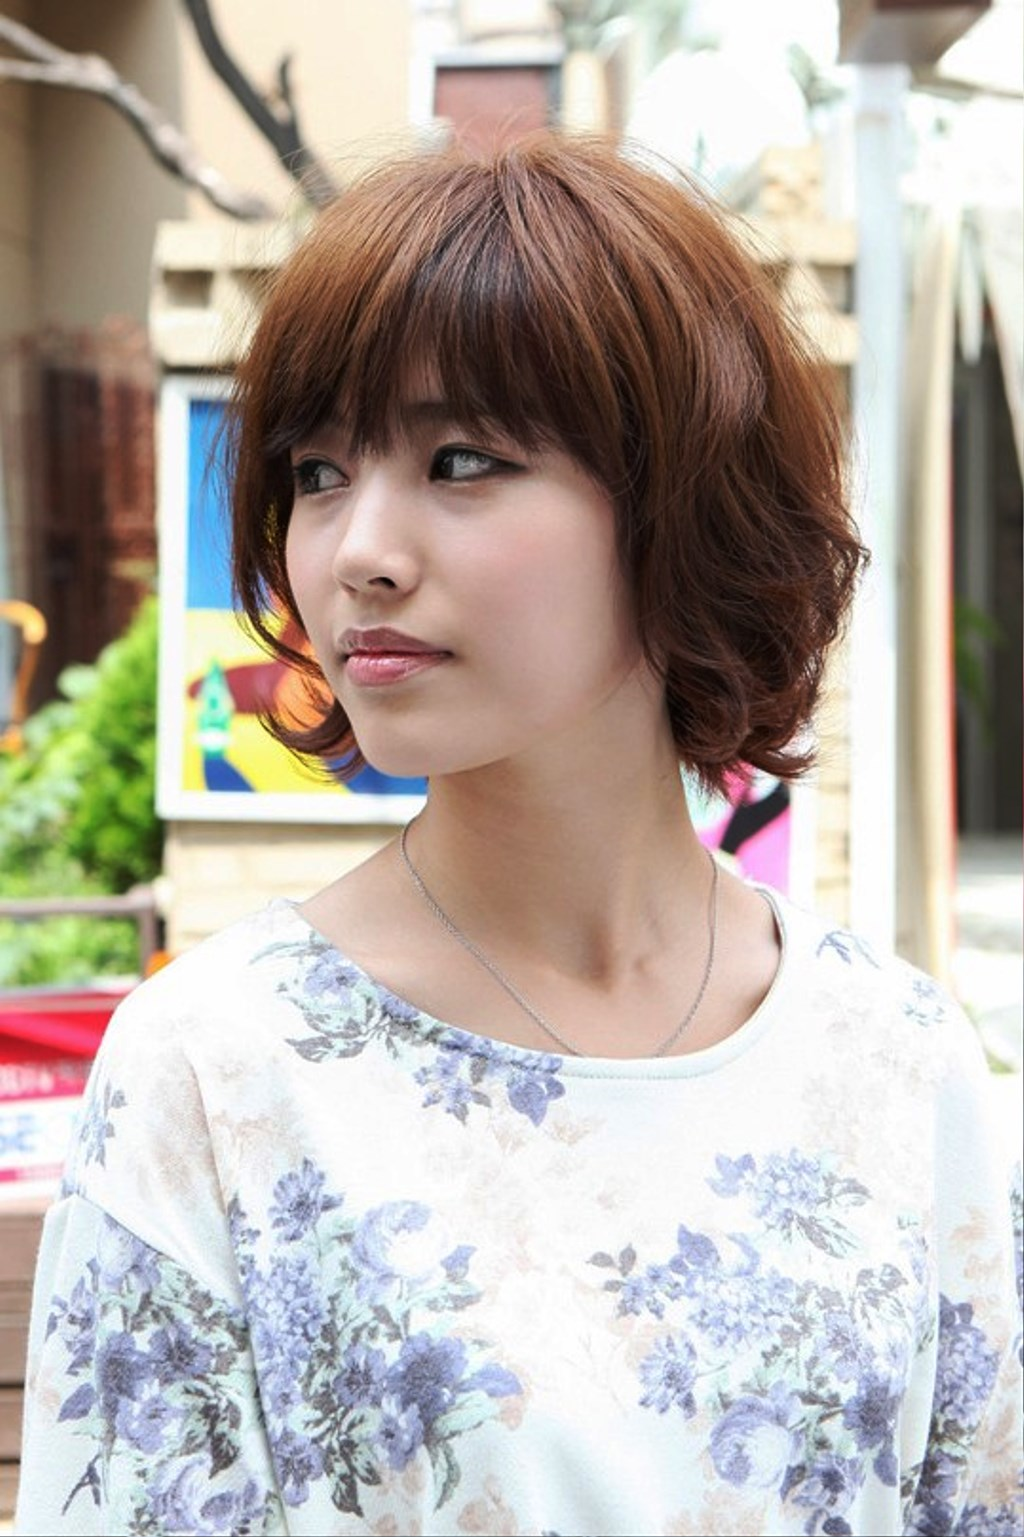 Pictures of Layered Short Asian Bob Haircut